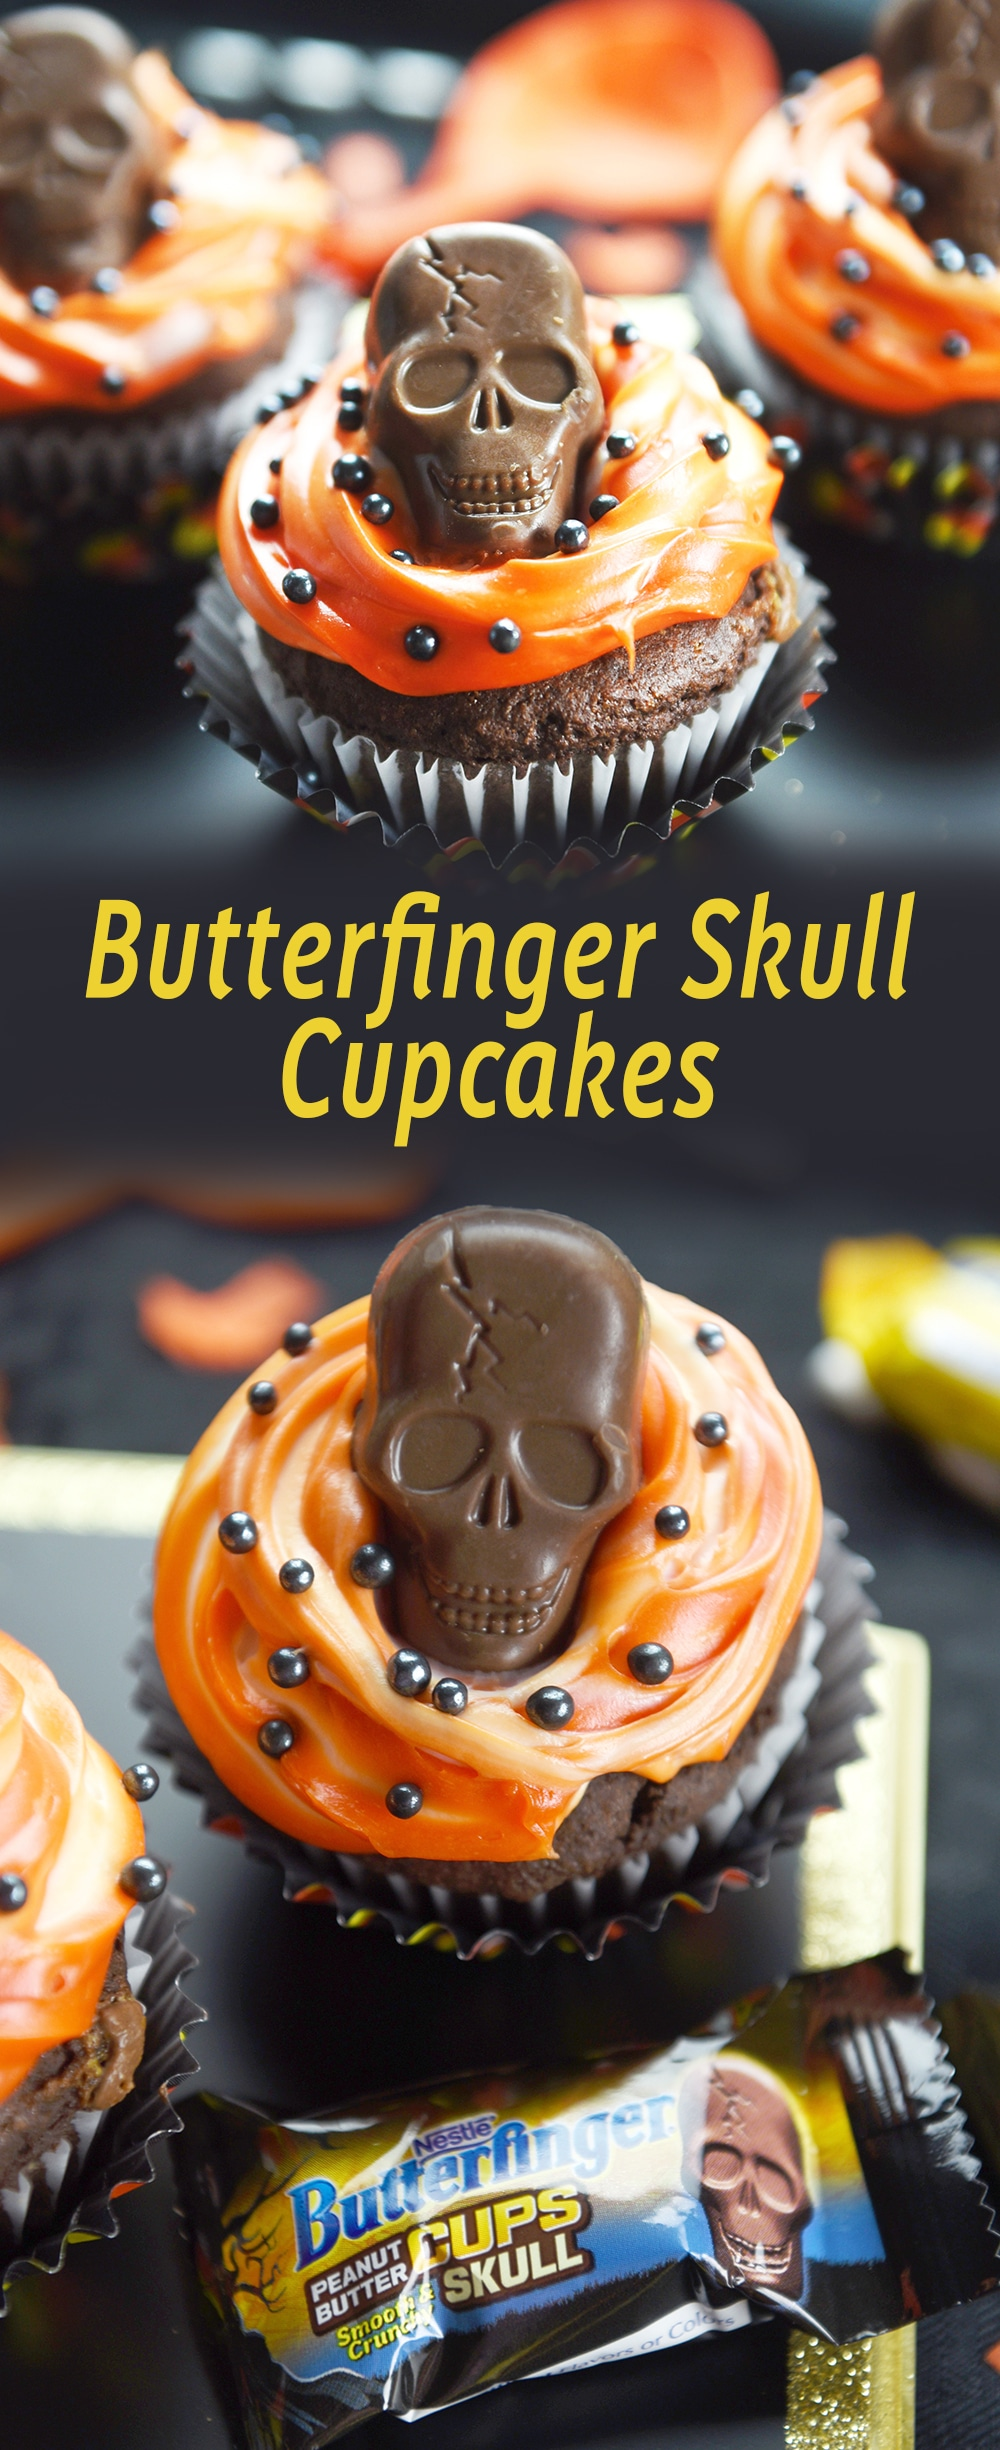 TheseButterfinger Skull Cupcakes have a taste of Butterfinger inside and are topped with a creamy Butterfinger Peanut Butter Skull Cups!